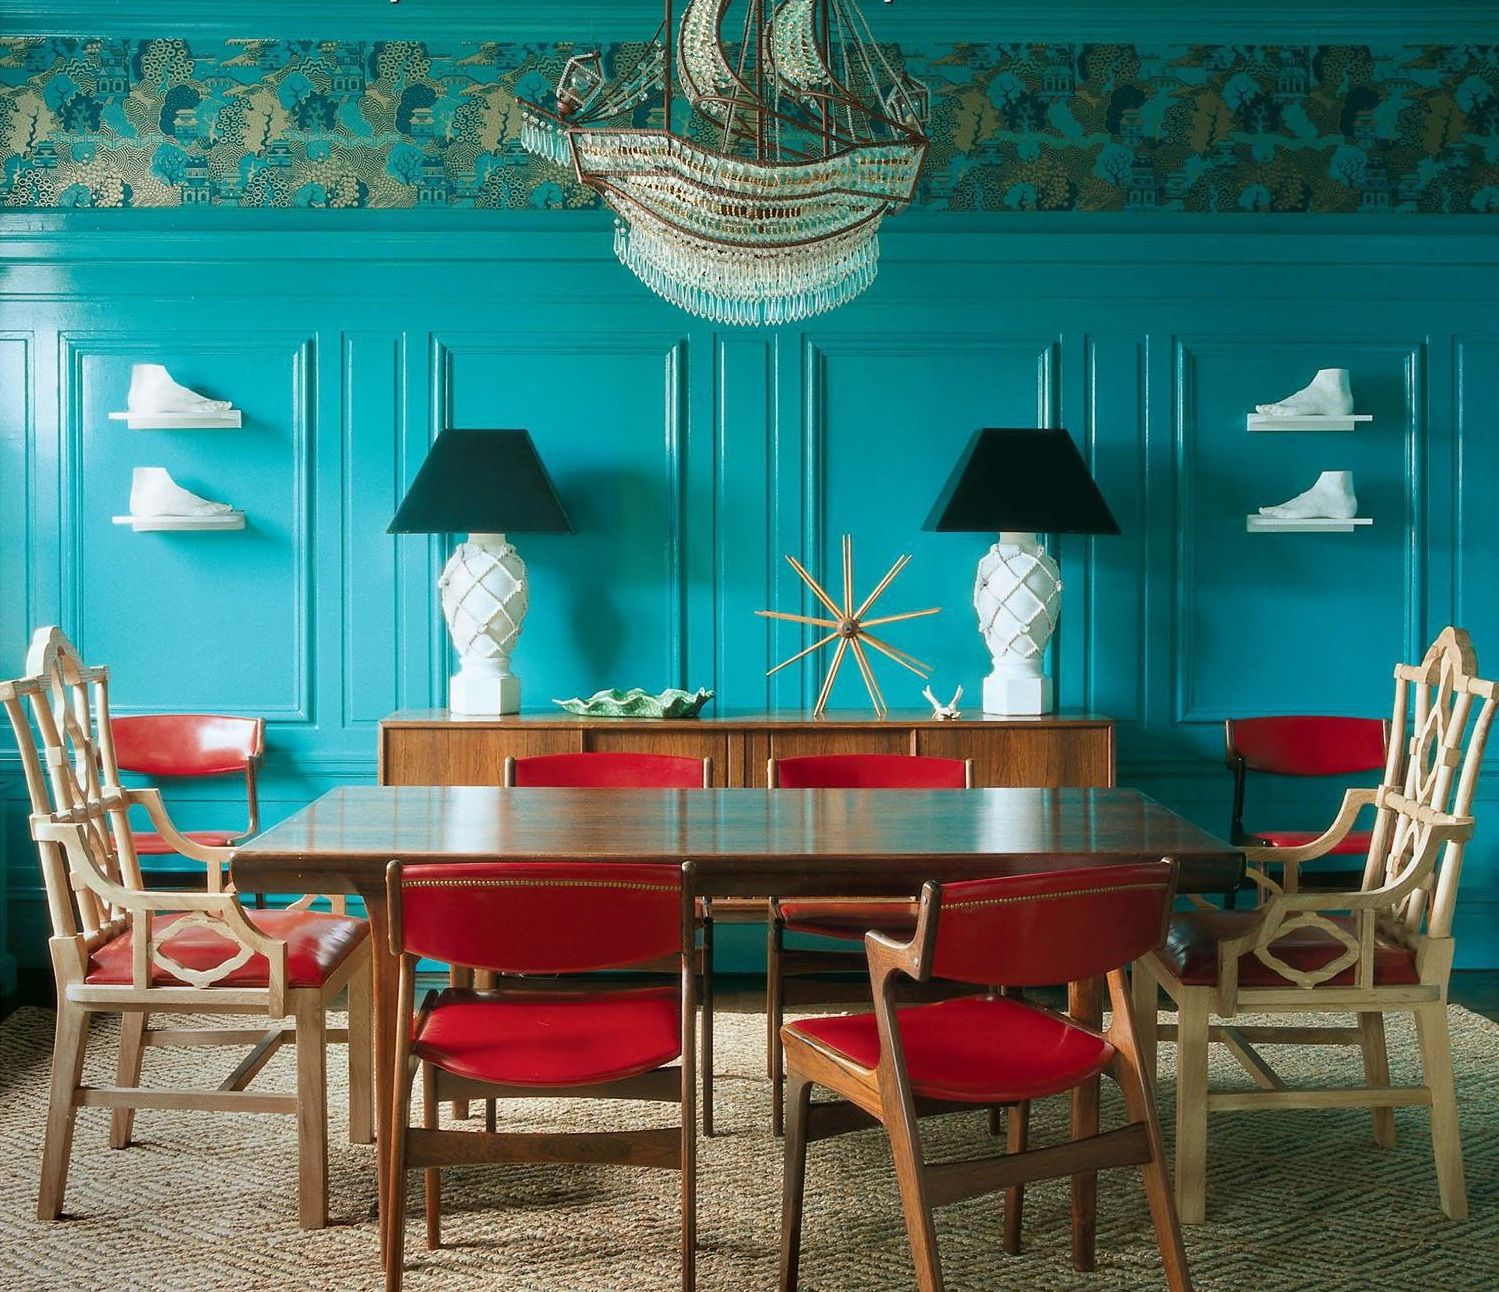 Wohnkultur esszimmer turquoise teal and white  for hong kong  pinterest